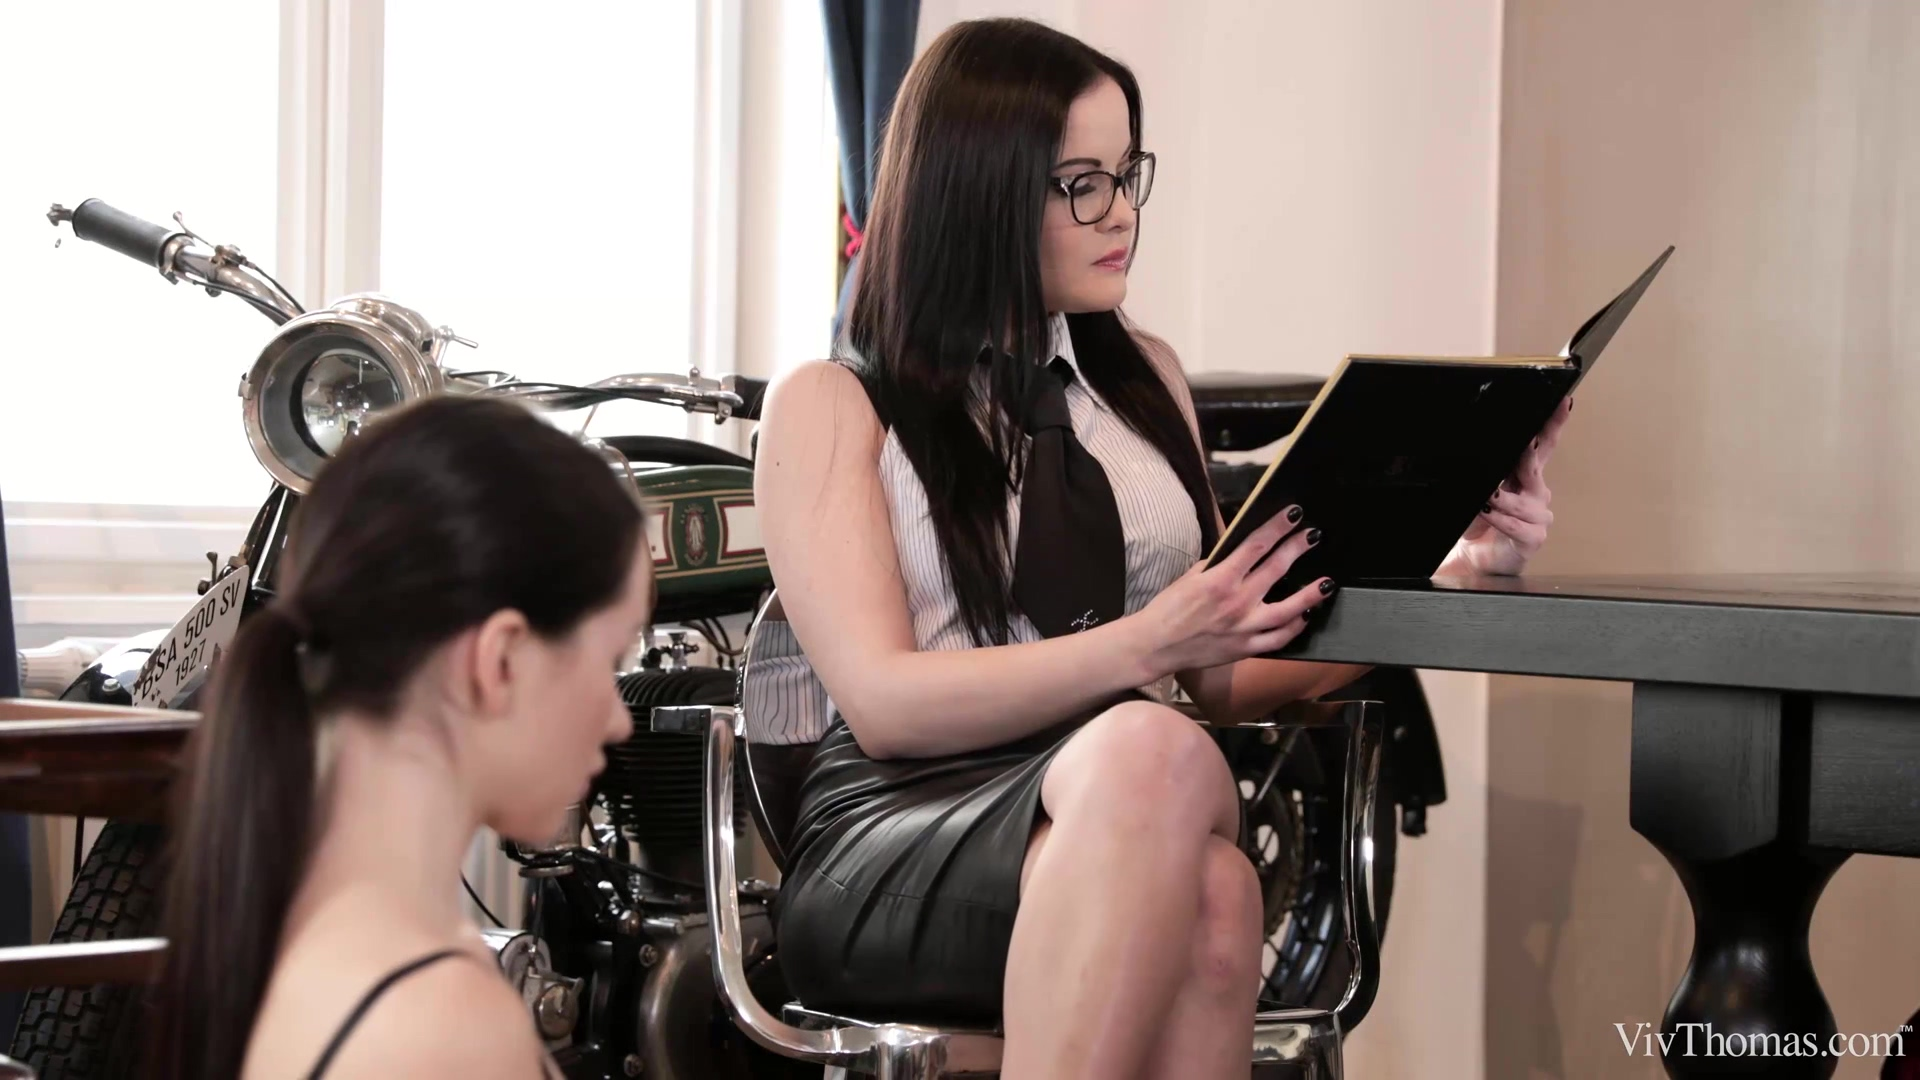 VivThomas - Dolly Diore - Sasha Rose Dark Desires Episo